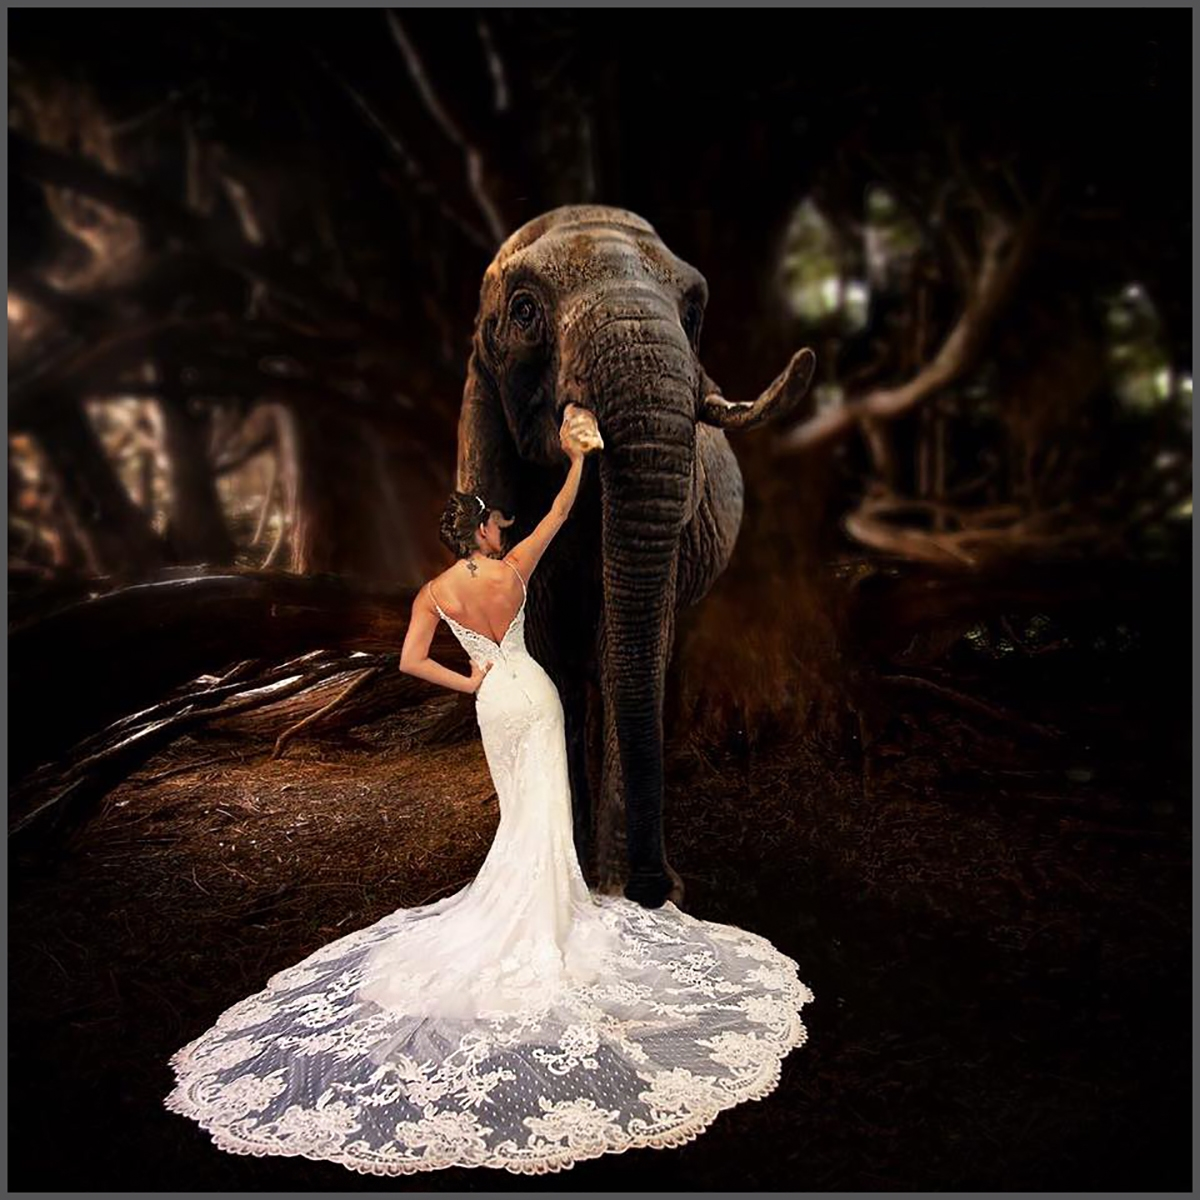 Clive Figes_Jumbo wedding_None